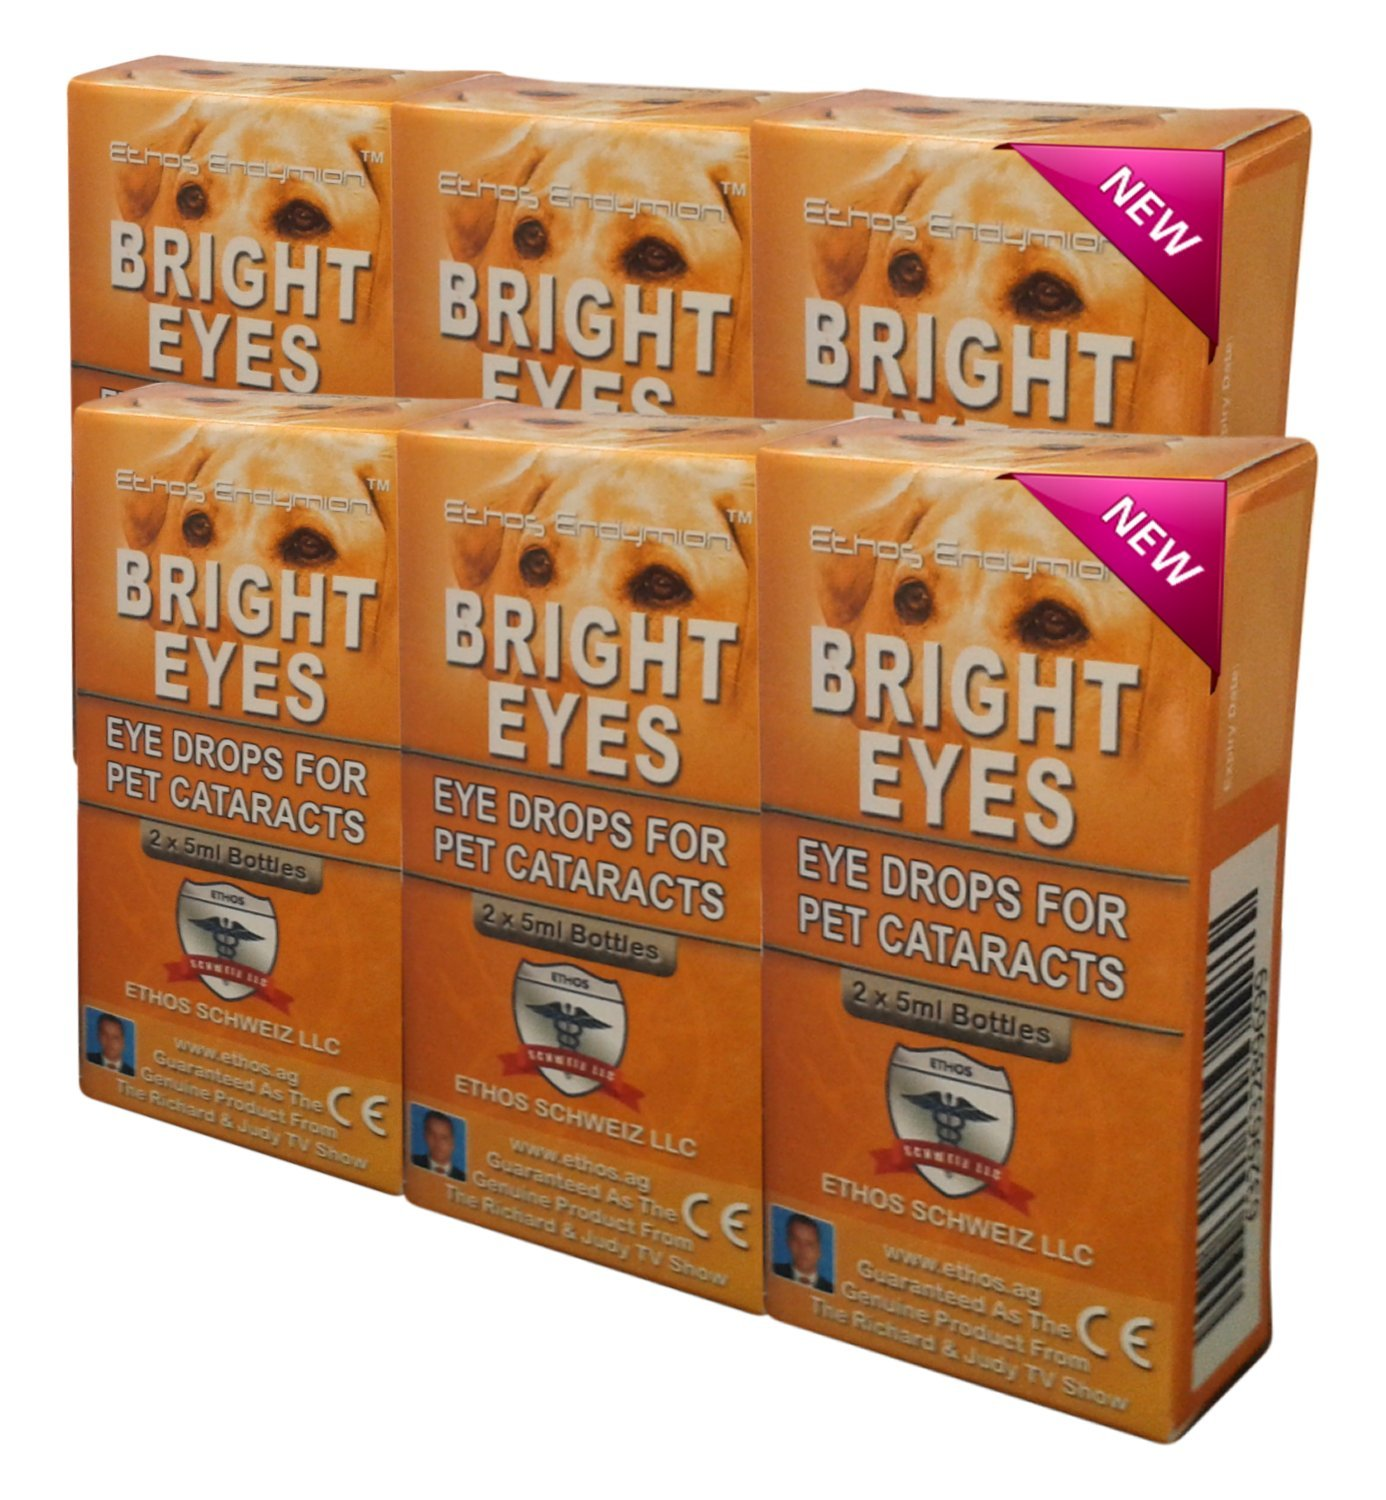 Carnosine Eye Drops 6 boxes (12 x 5ml bottles) - Ethos Bright Eyes™ NAC Eye Drops for Pets as Seen on UK National TV with Amazing Results! NAC n acetyl carnosine eye drops - Protect Your Pet's Vision with the Very Best Eye Care Available...